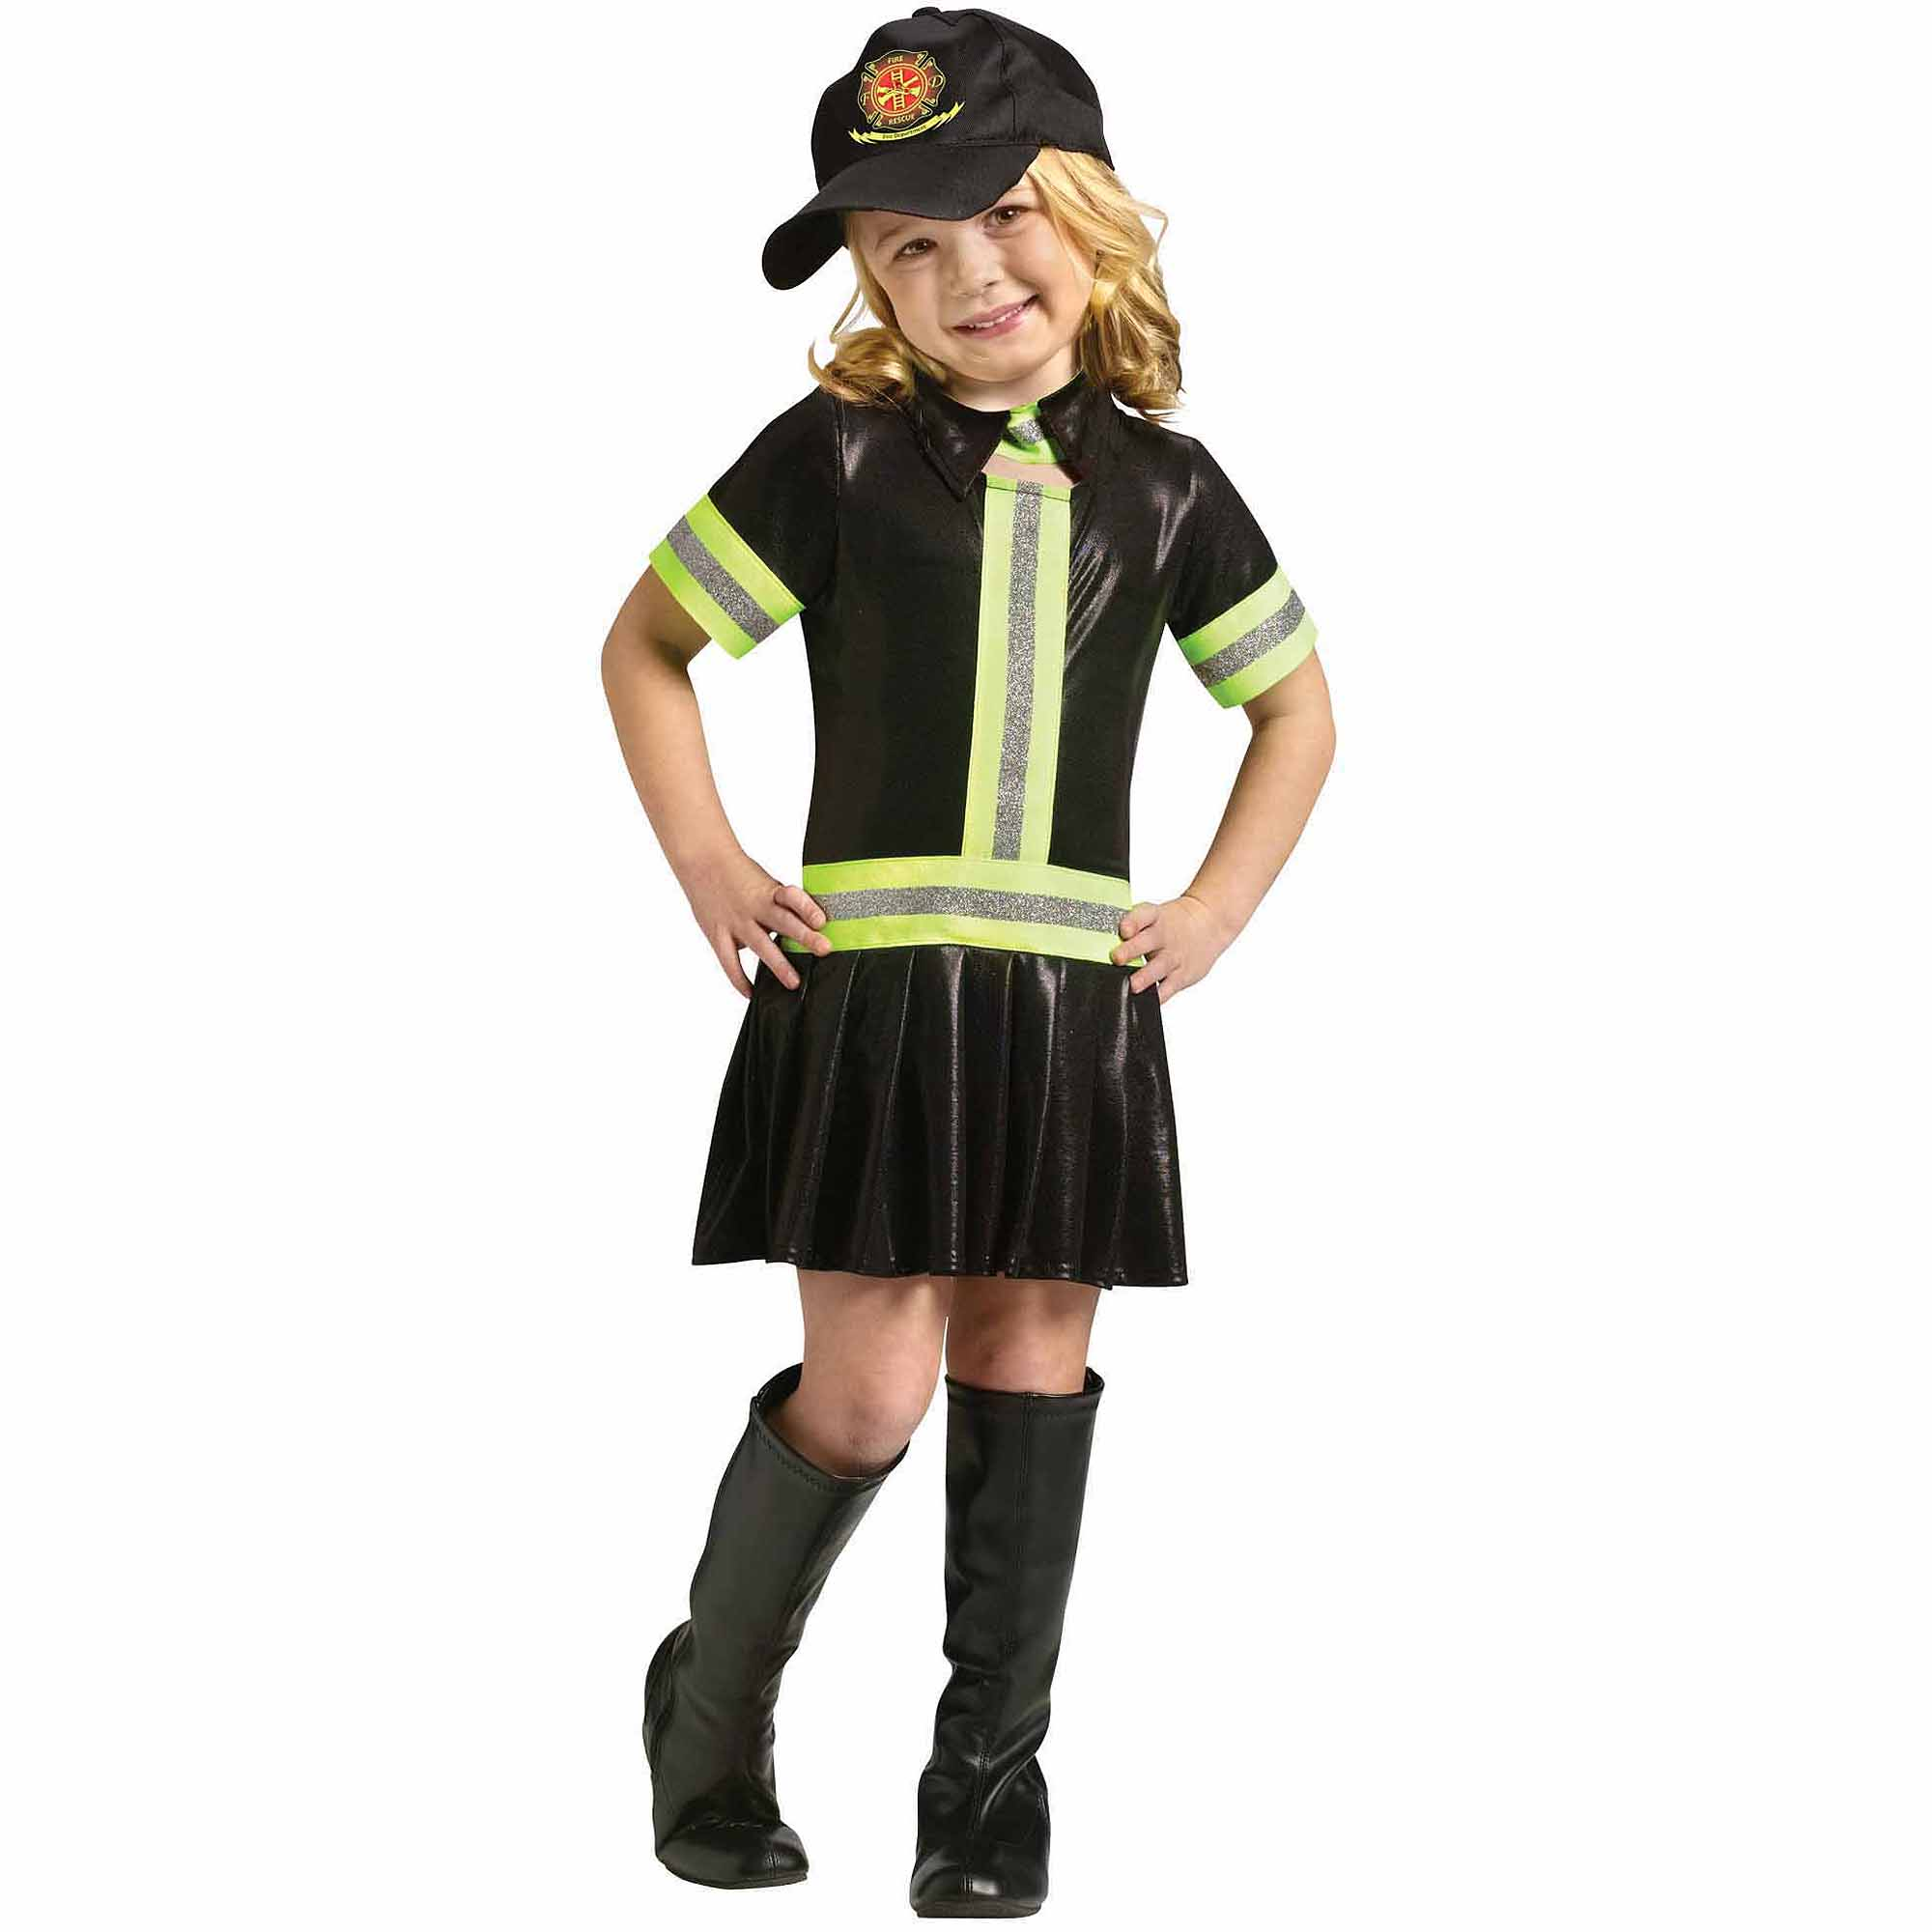 fire girl child halloween costume walmartcom - Halloween Costume Fire